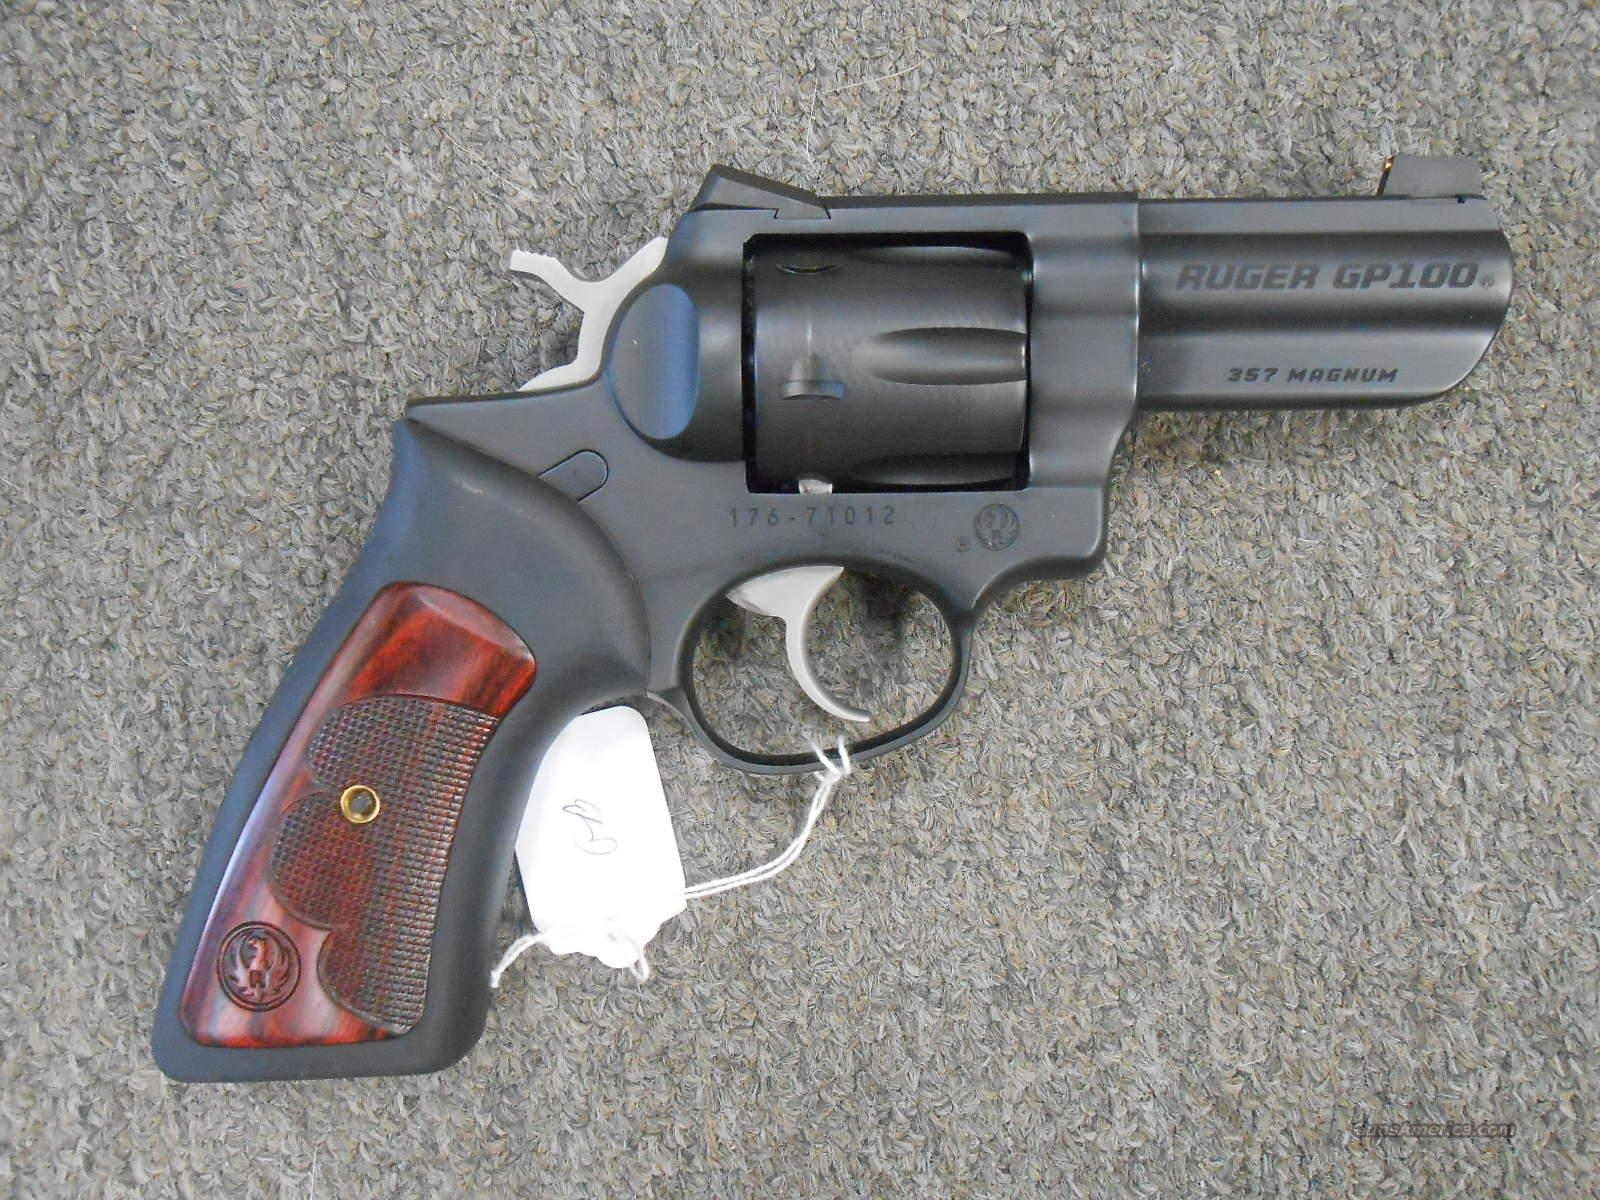 Ruger GP100 Wiley Clapp Edition 357mag 01753  Guns > Pistols > Ruger Double Action Revolver > SP101 Type